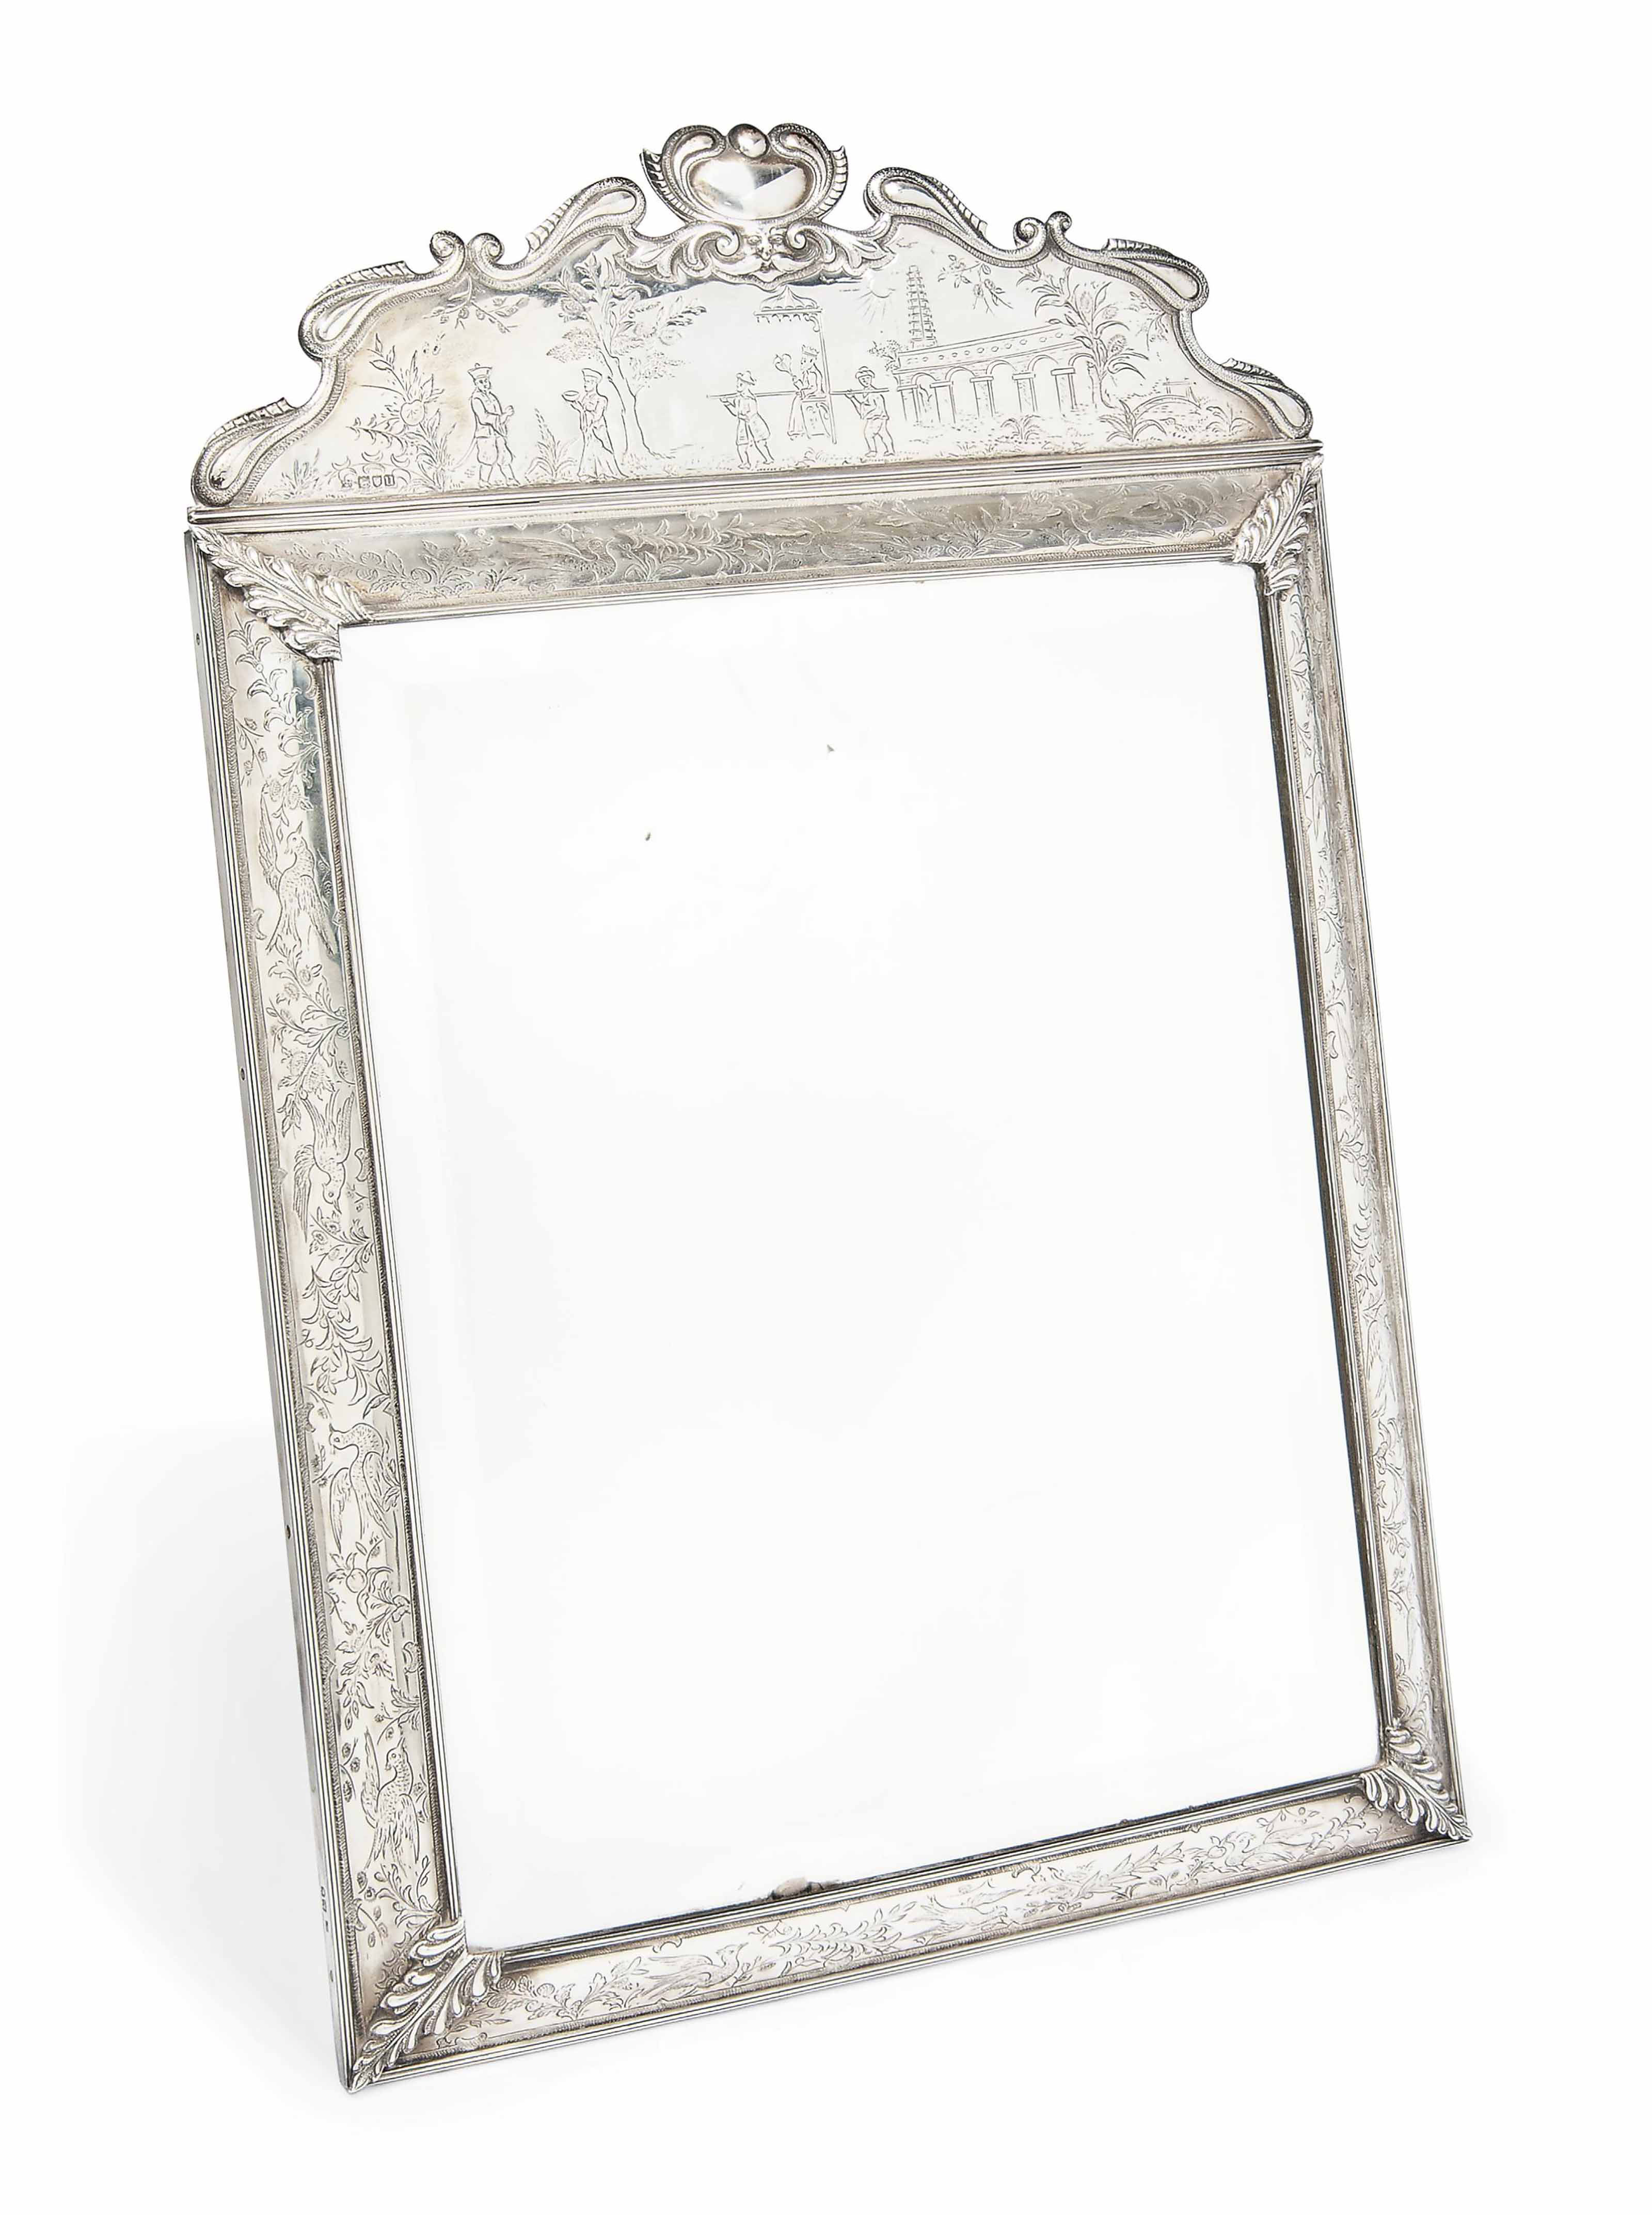 A SILVER REPRODUCTION OF A WILLIAM AND MARY CHINOISERIE DRESSING TABLE MIRROR